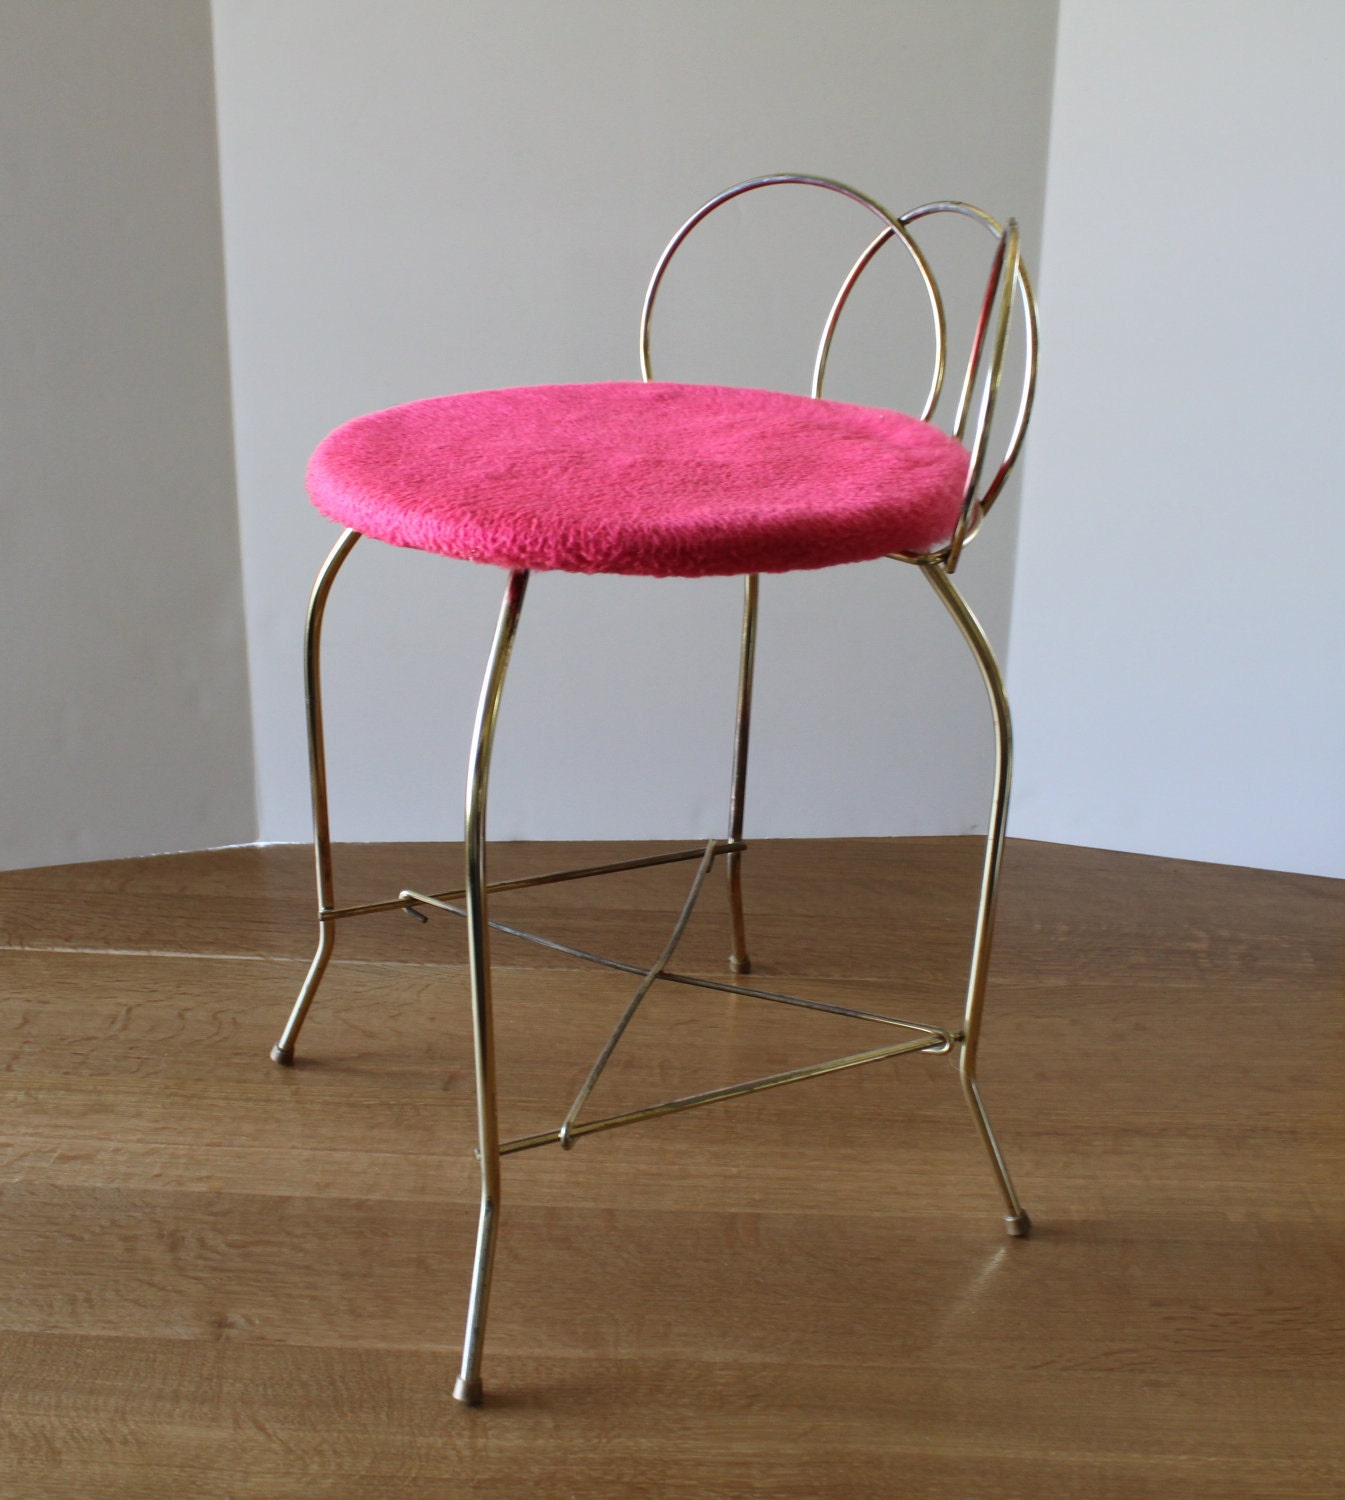 The Brescian Professionals For Marvellous Metal Furniture: Vintage Vanity Chair Metal Bench Stool Retro Mod Hot Pink